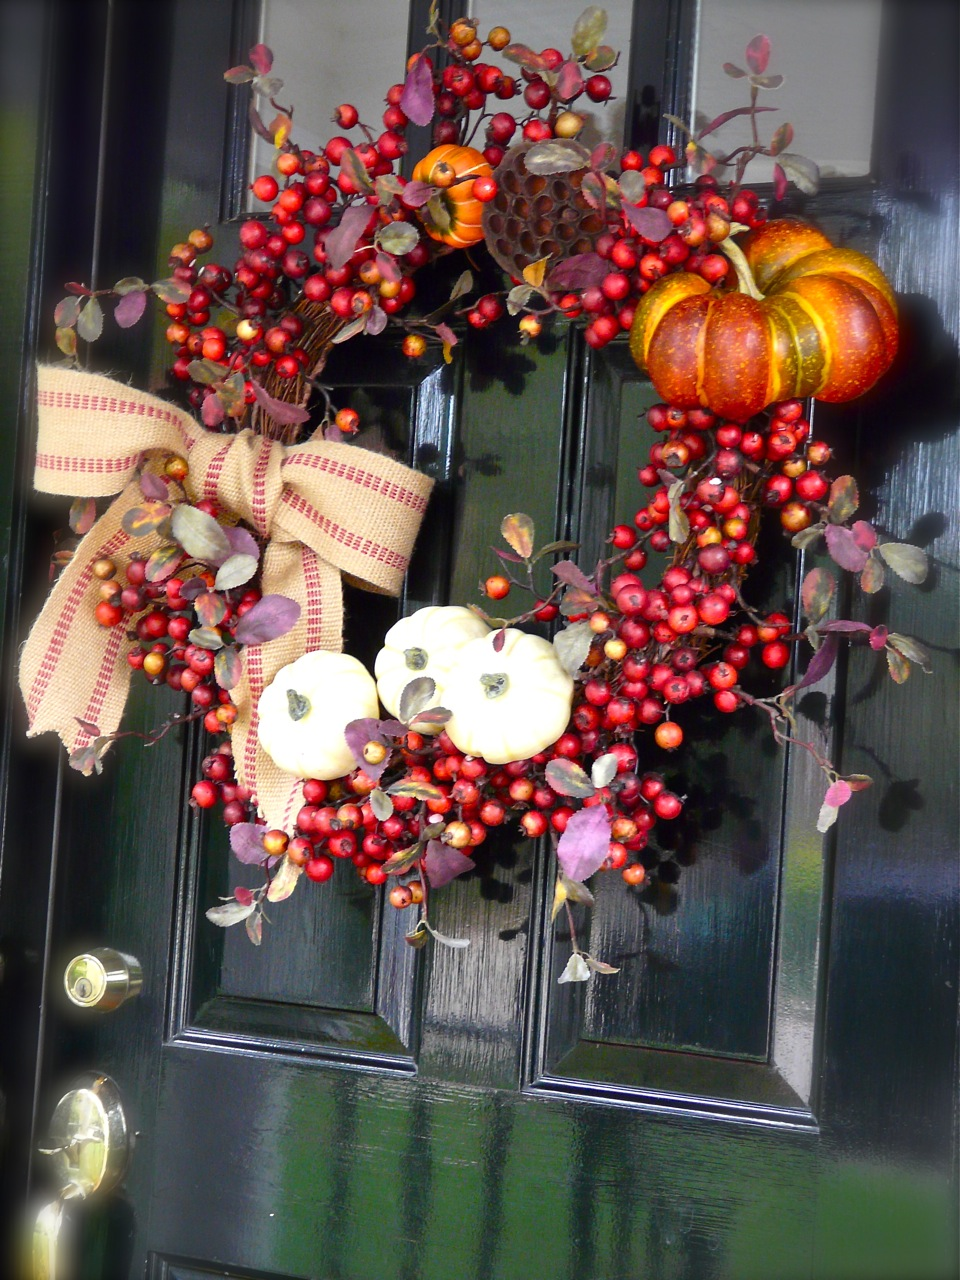 Wreath on the autumn door. (Photo: House TalkN)